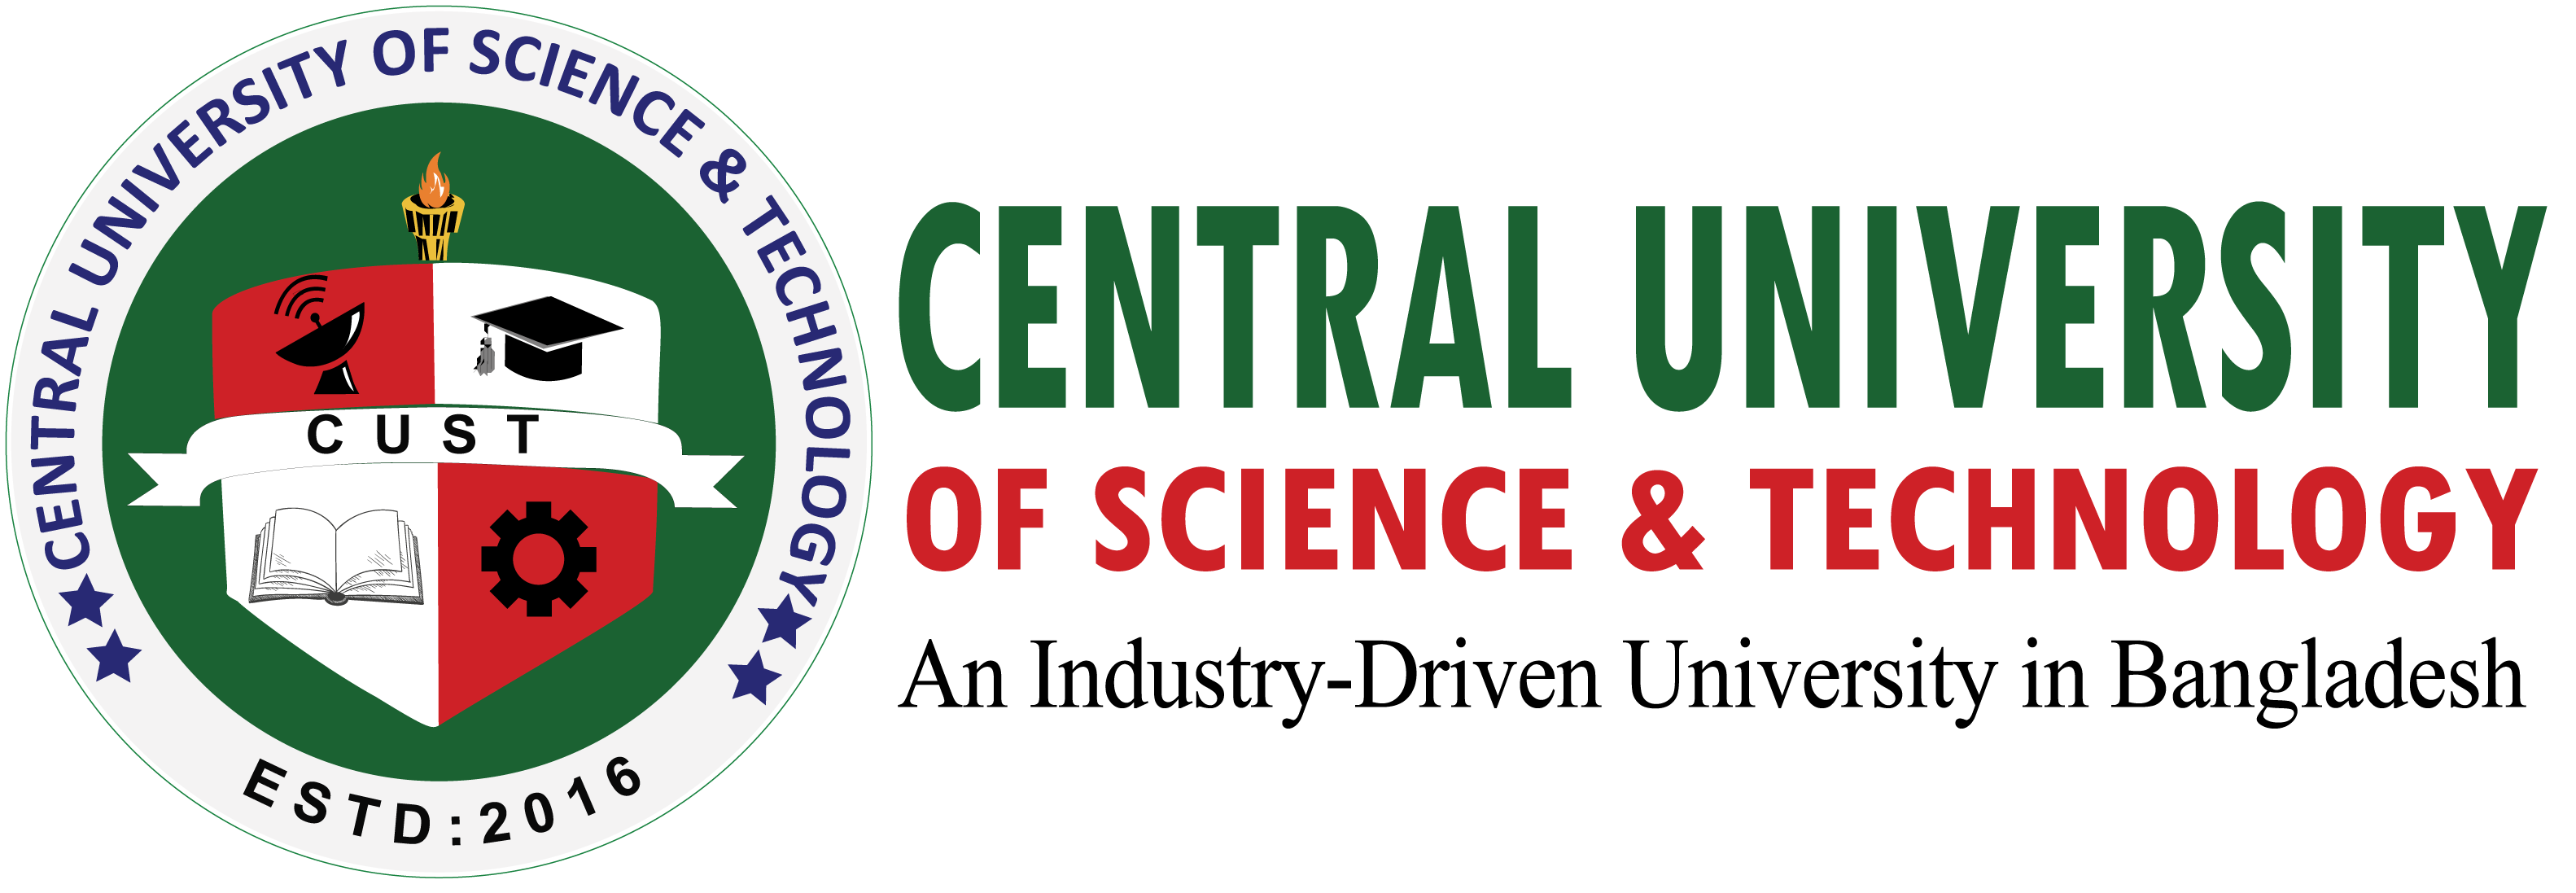 Class Schedule - Central University of Science and Technology